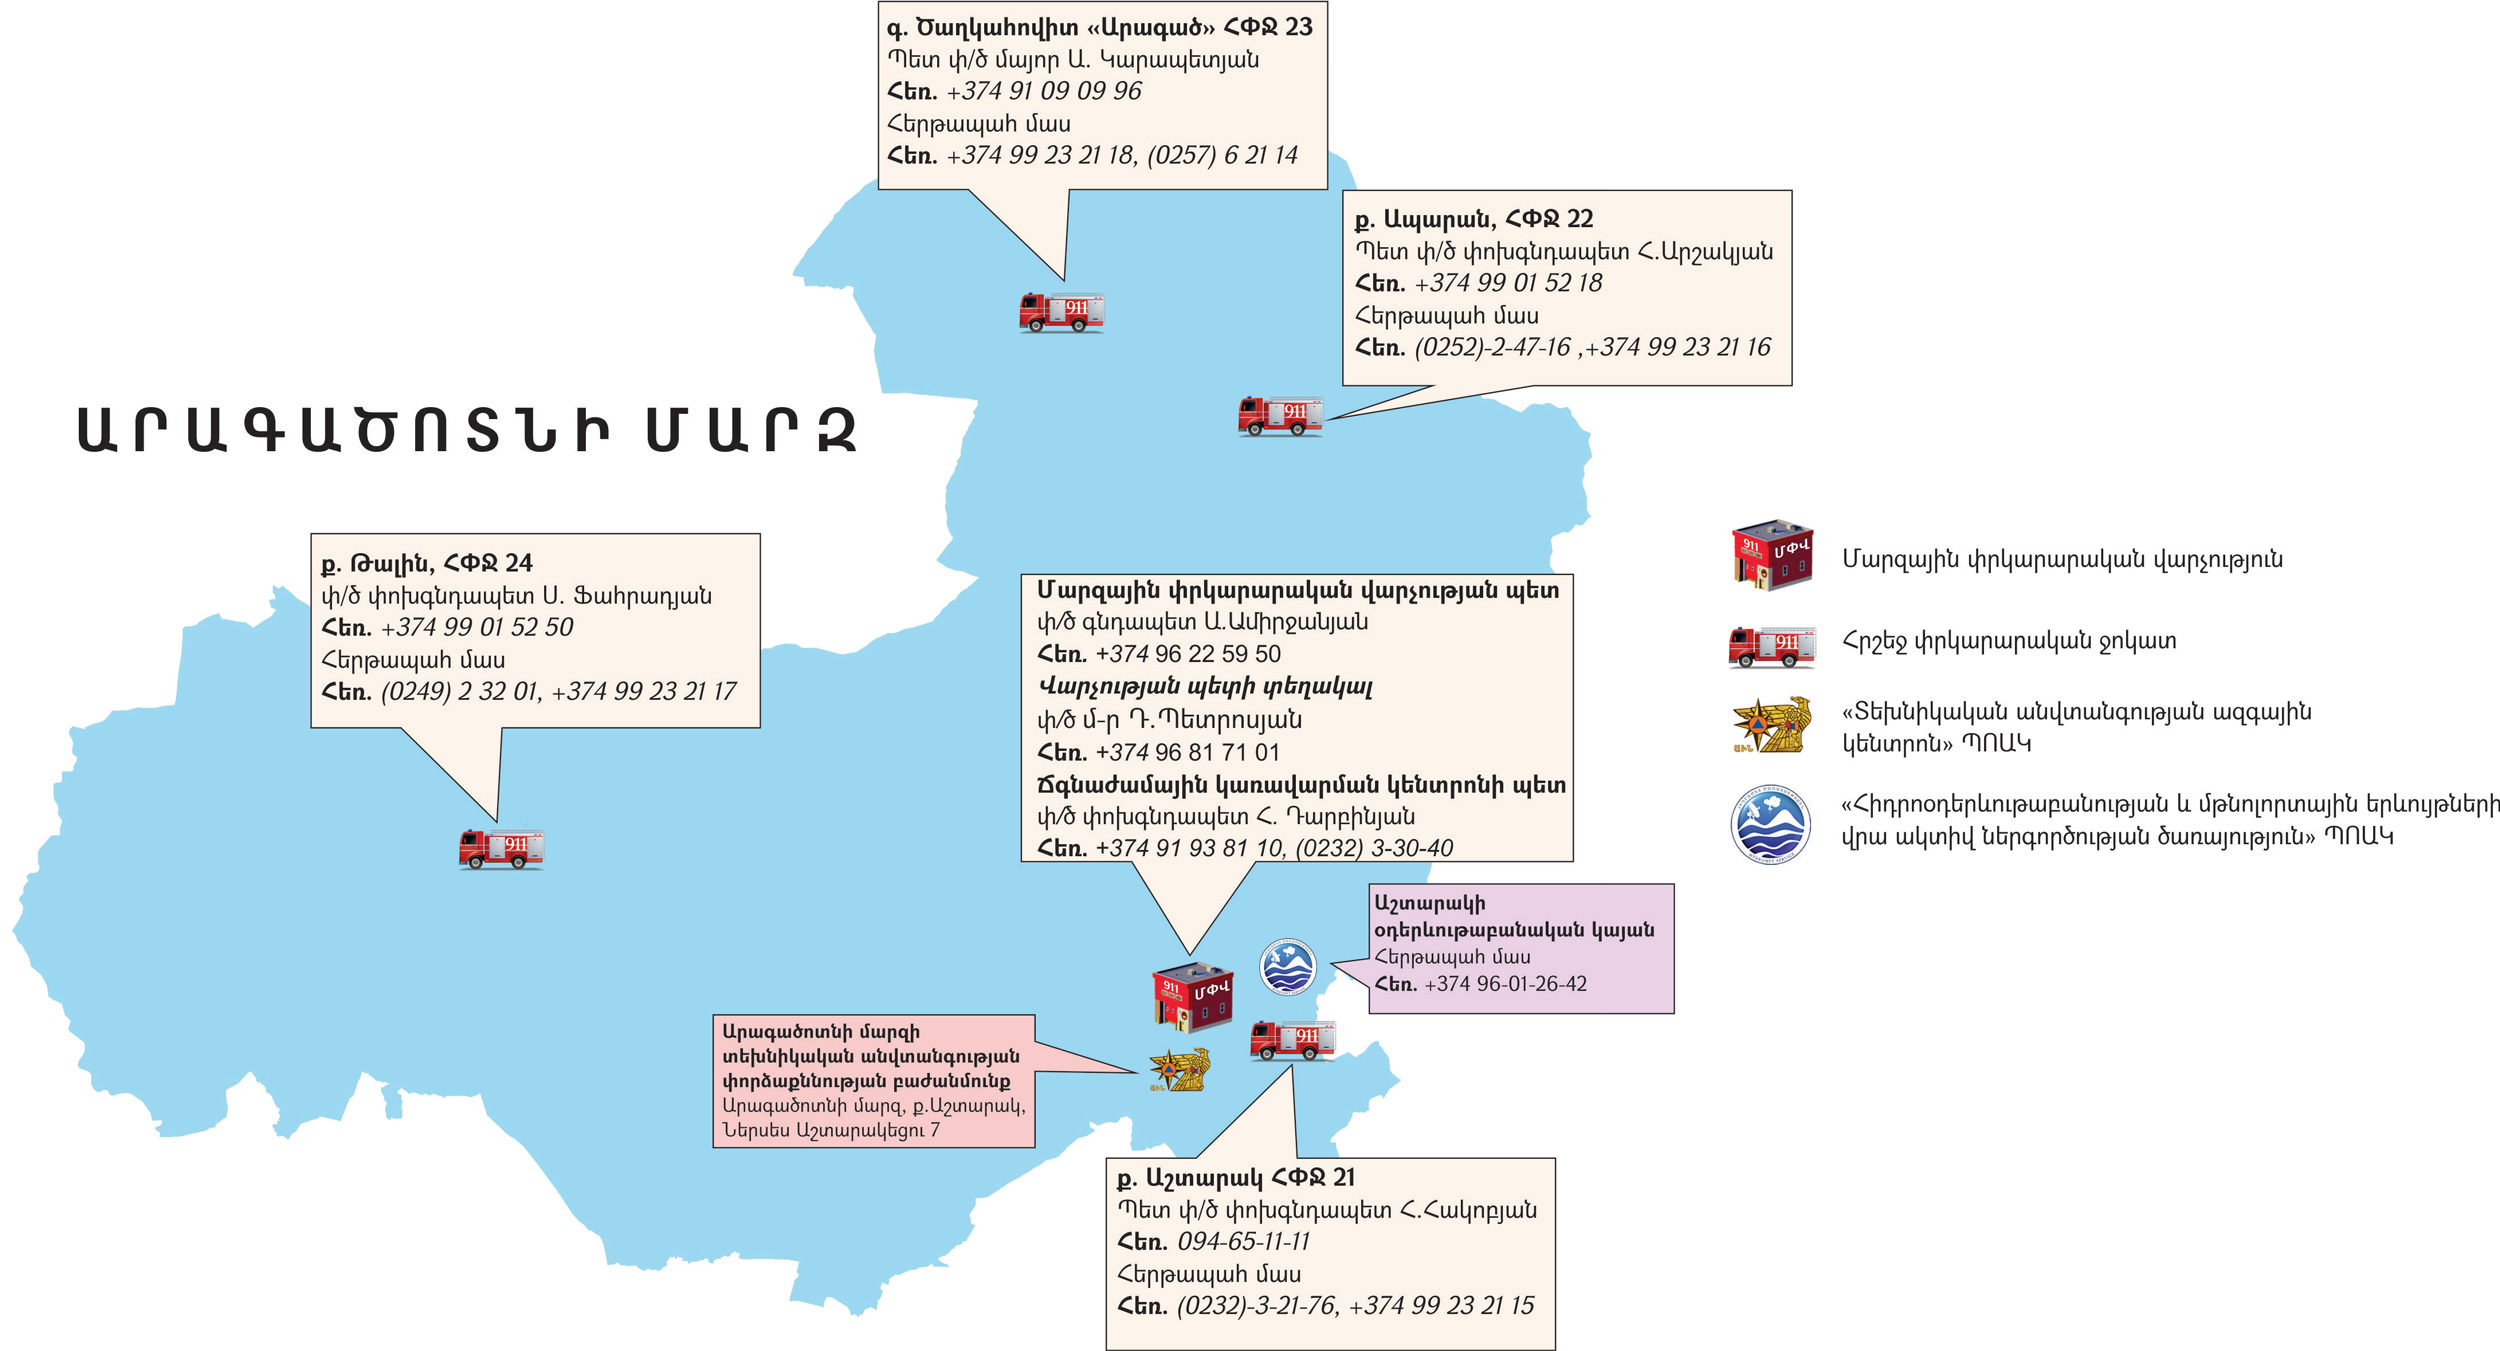 Reform of the Ministry of Emergency Situations by 2018: reorganization 34